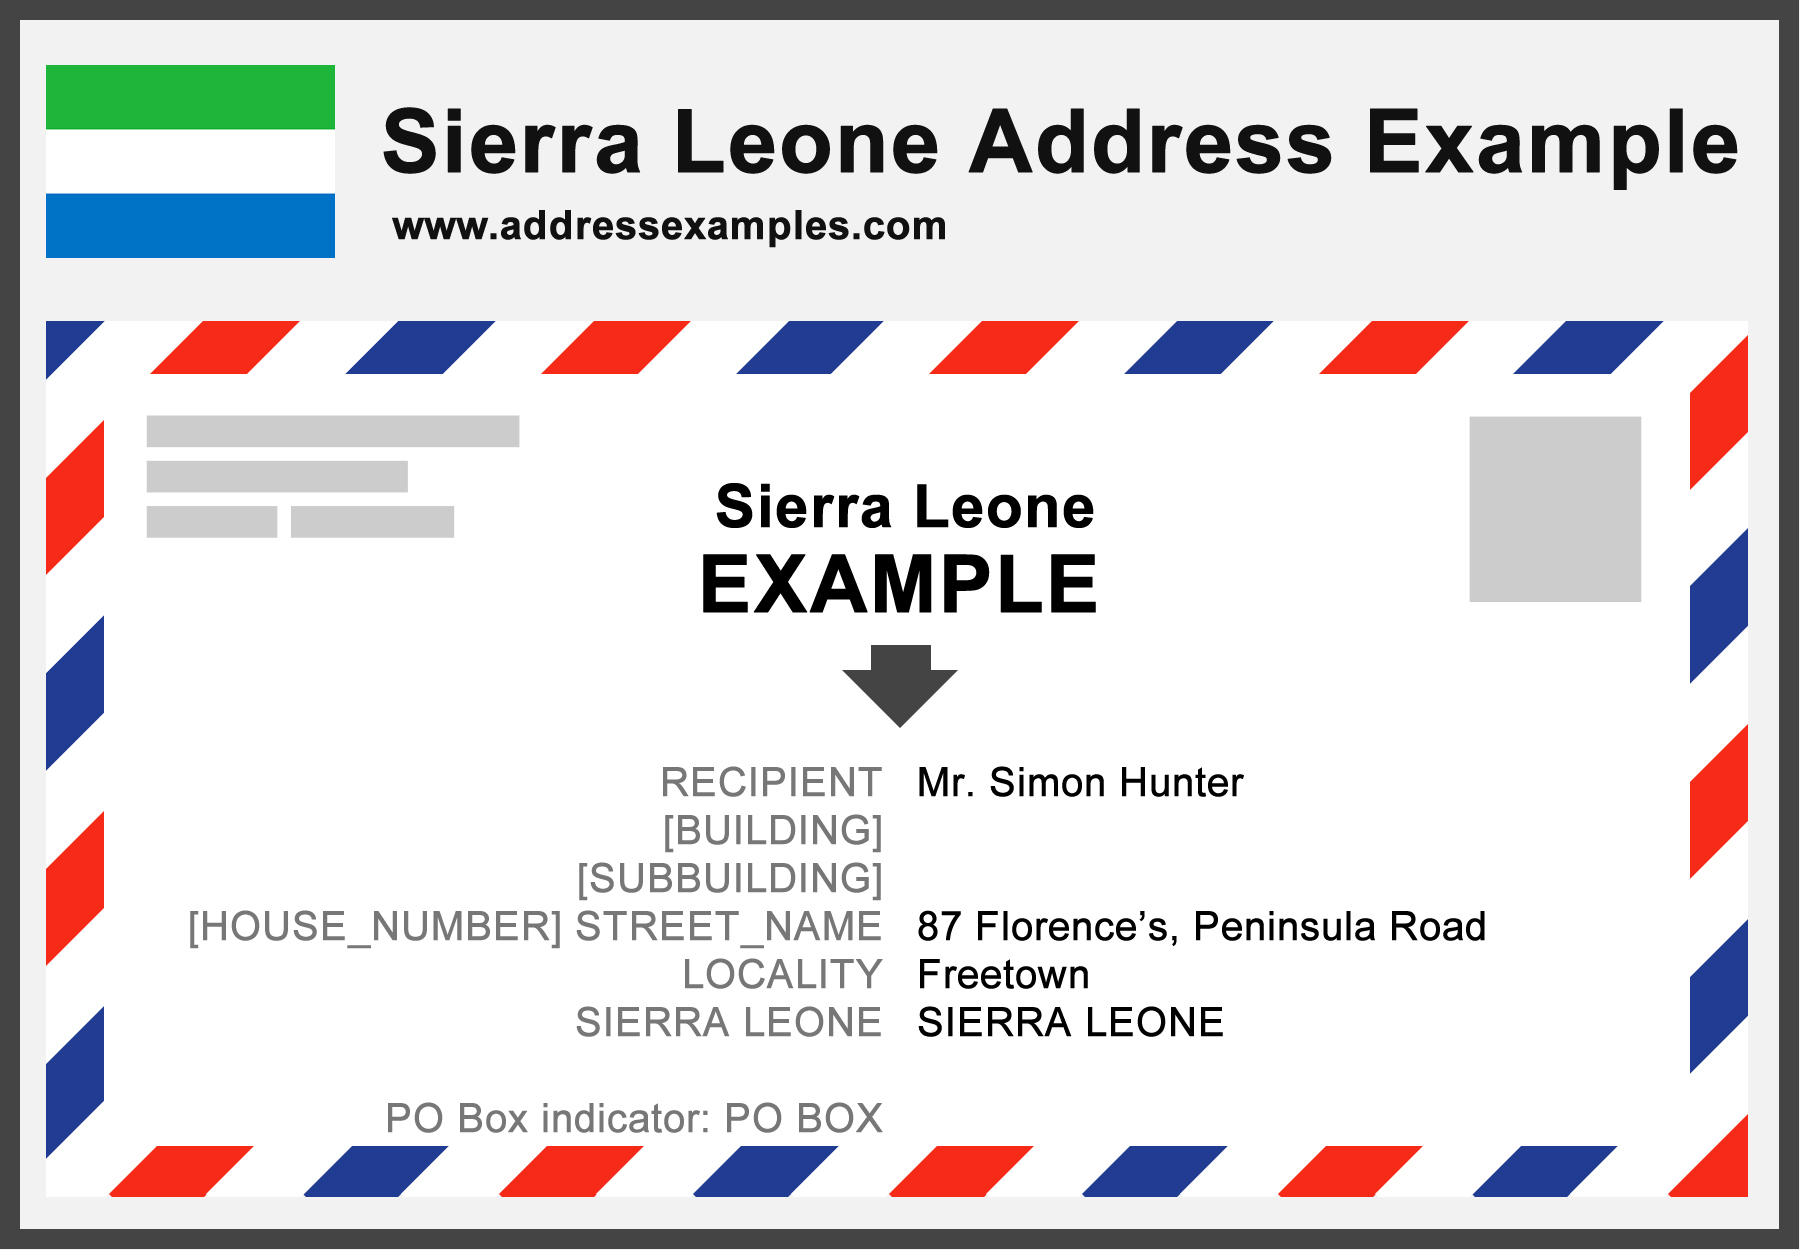 Sierra Leone Address Example